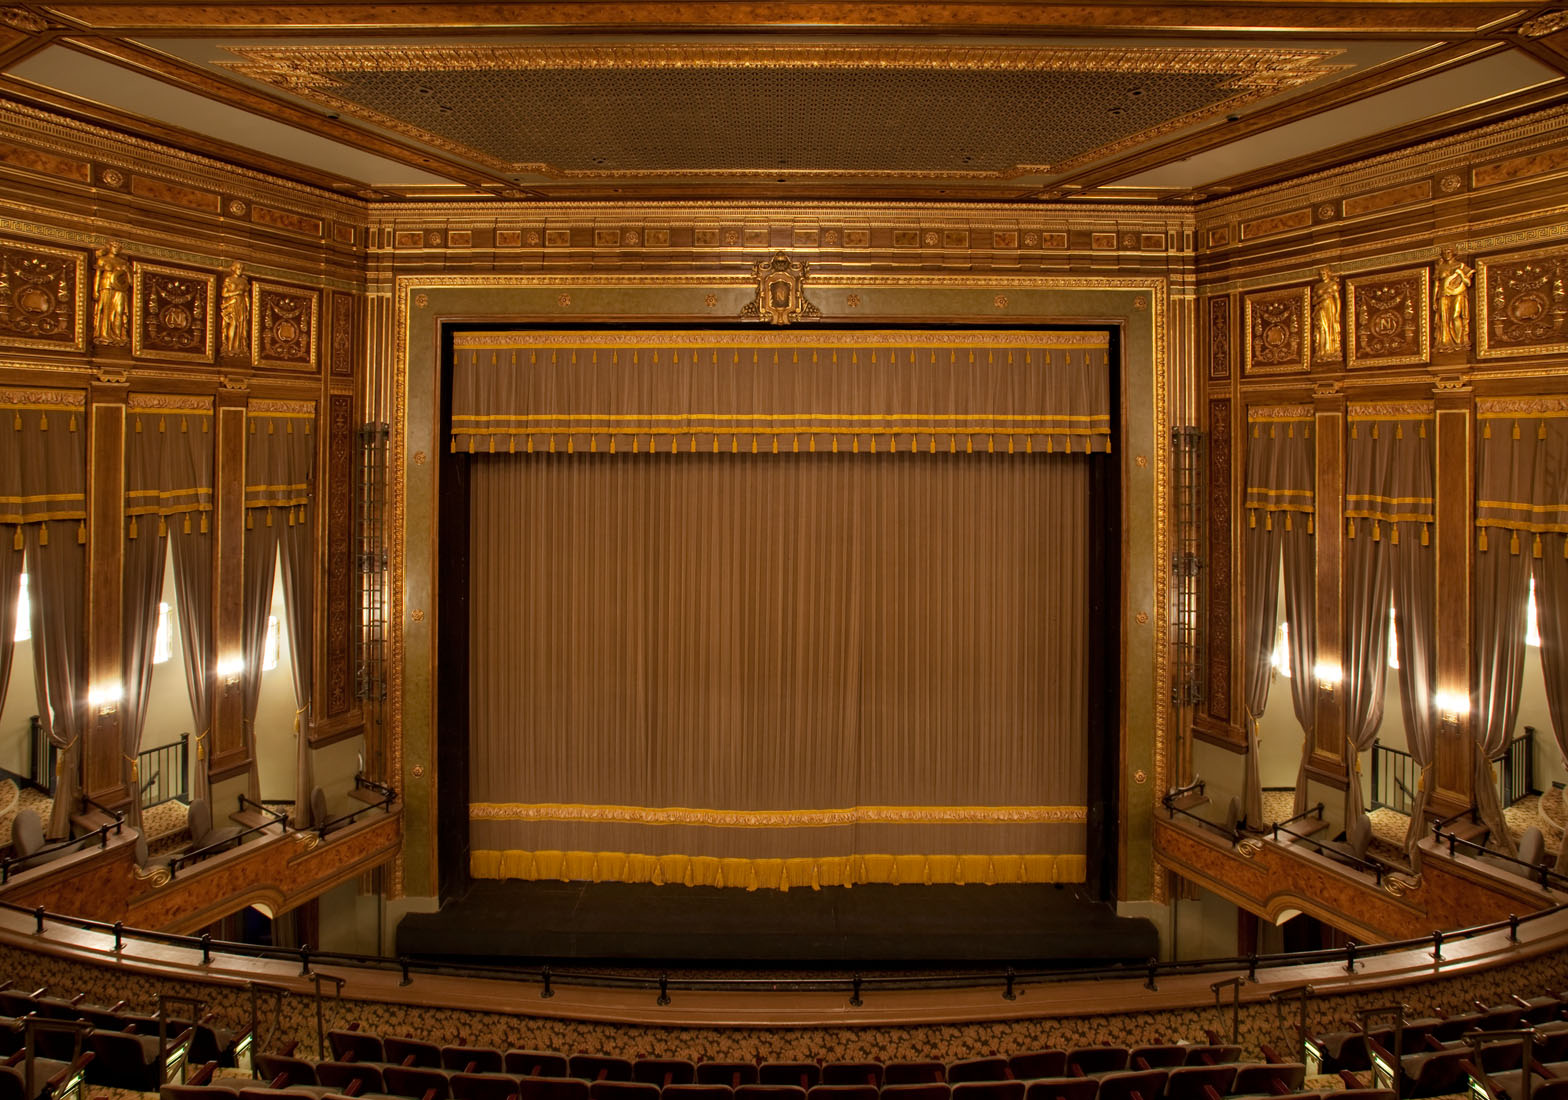 Renovated interior of the Nederlander Theatre (image from vipseats.com)